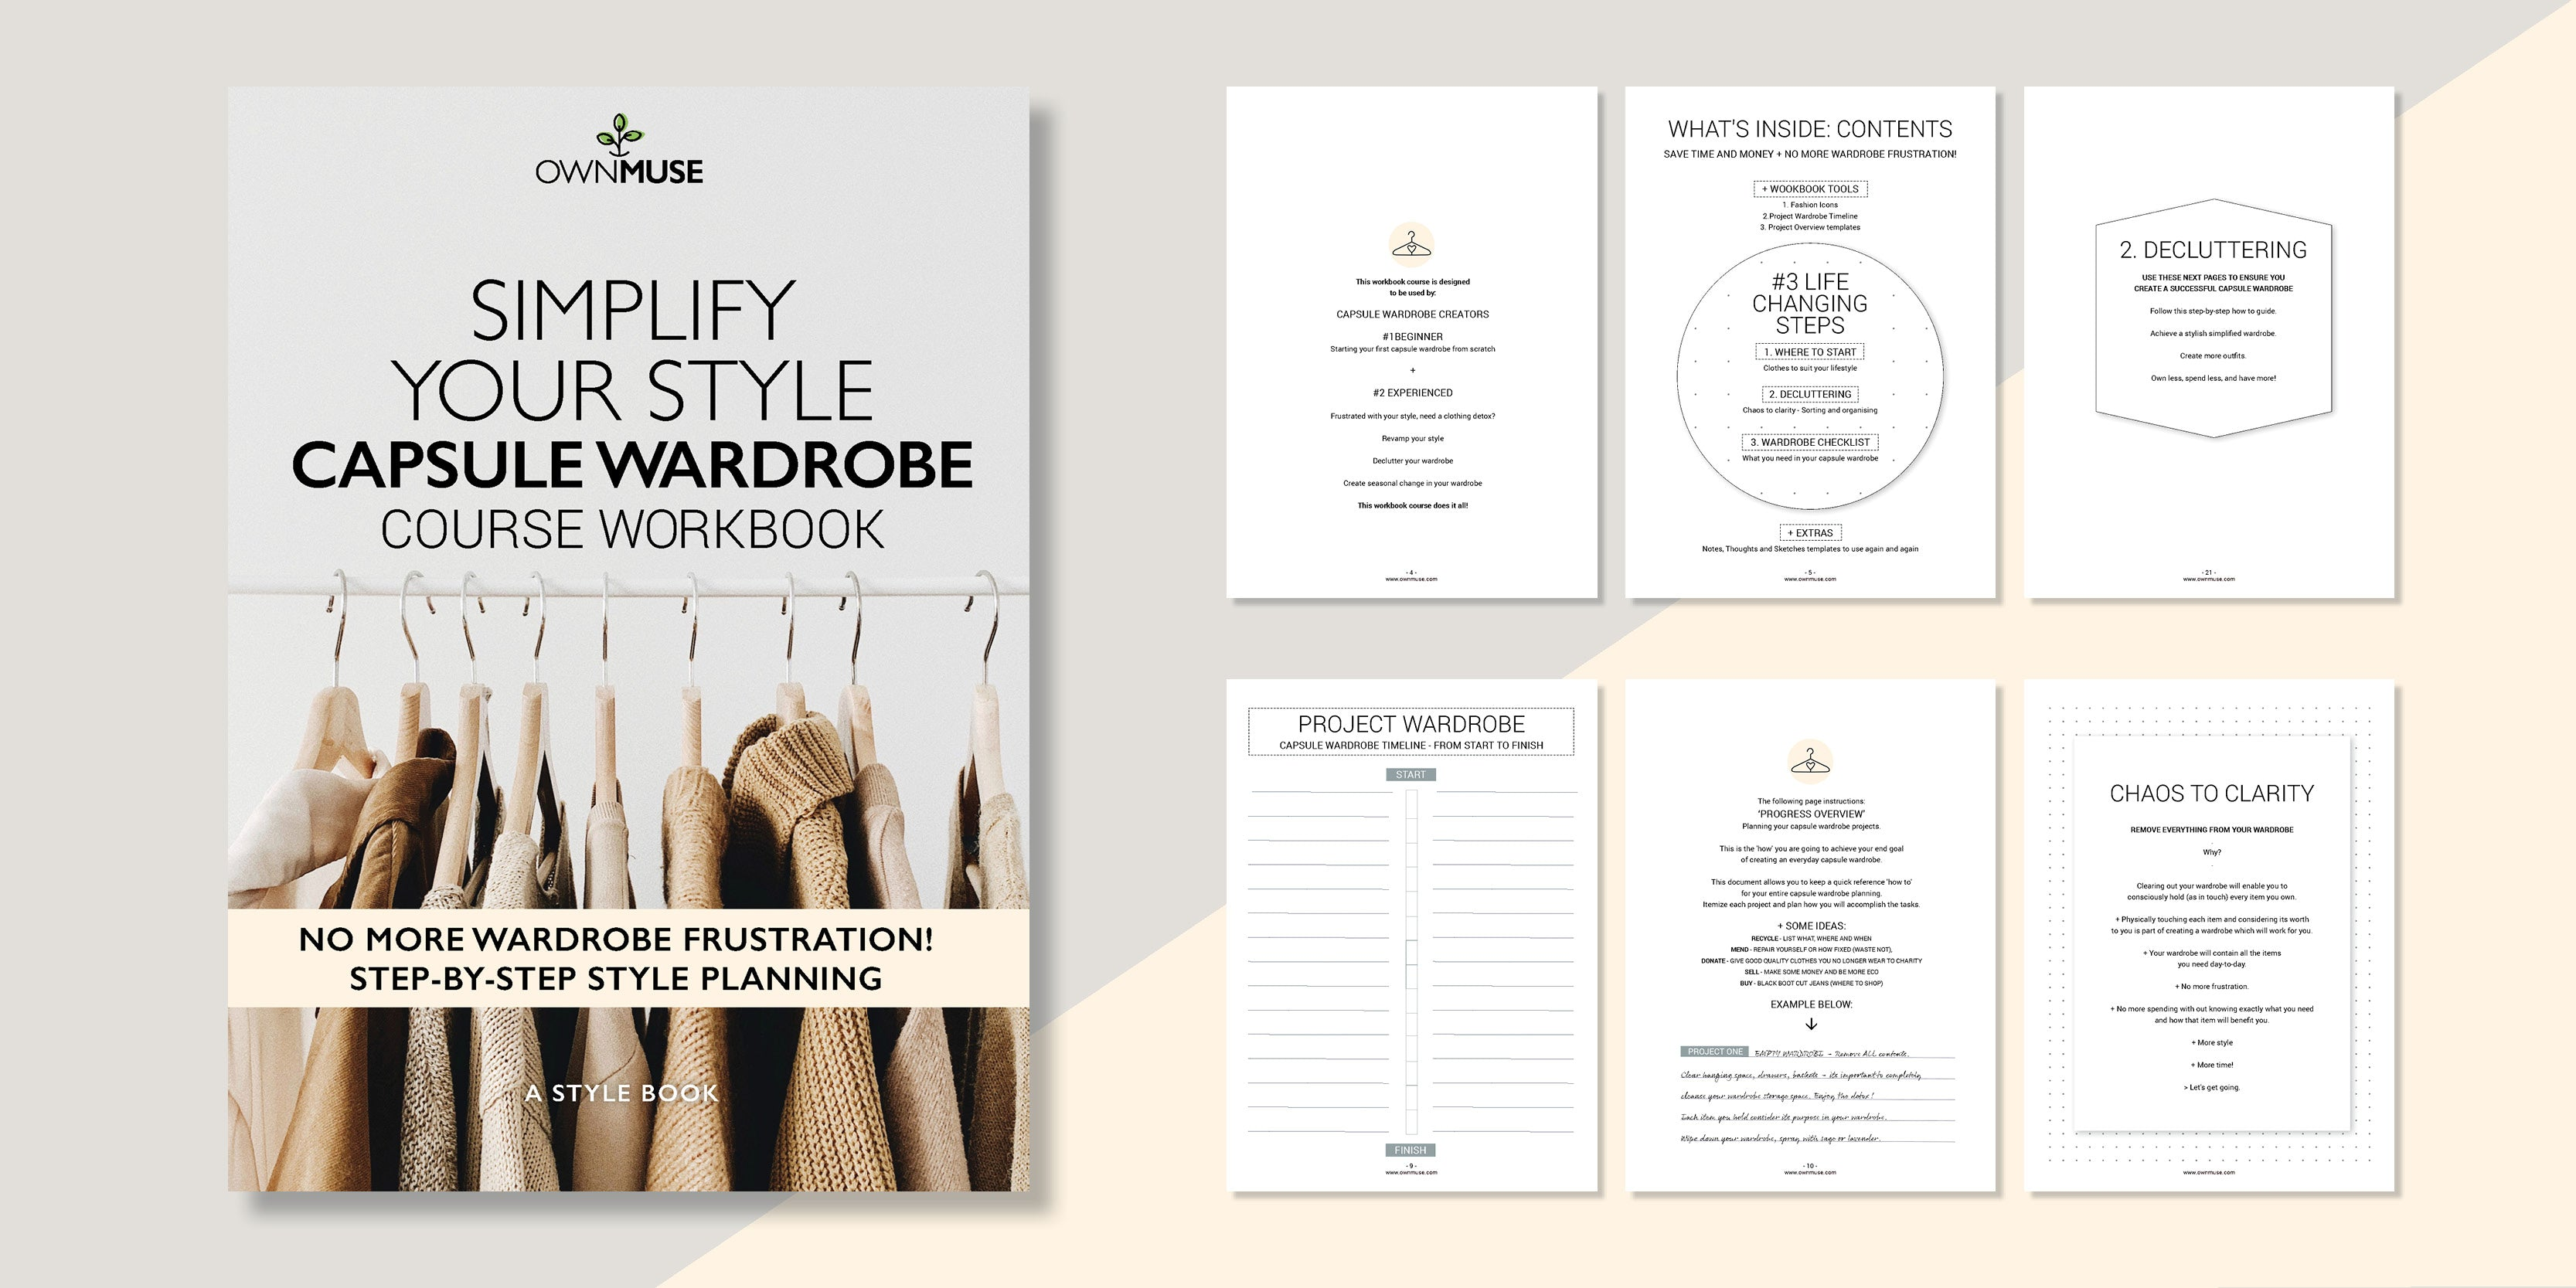 Simplify Your Style: Capsule Wardrobe - Course Workbook